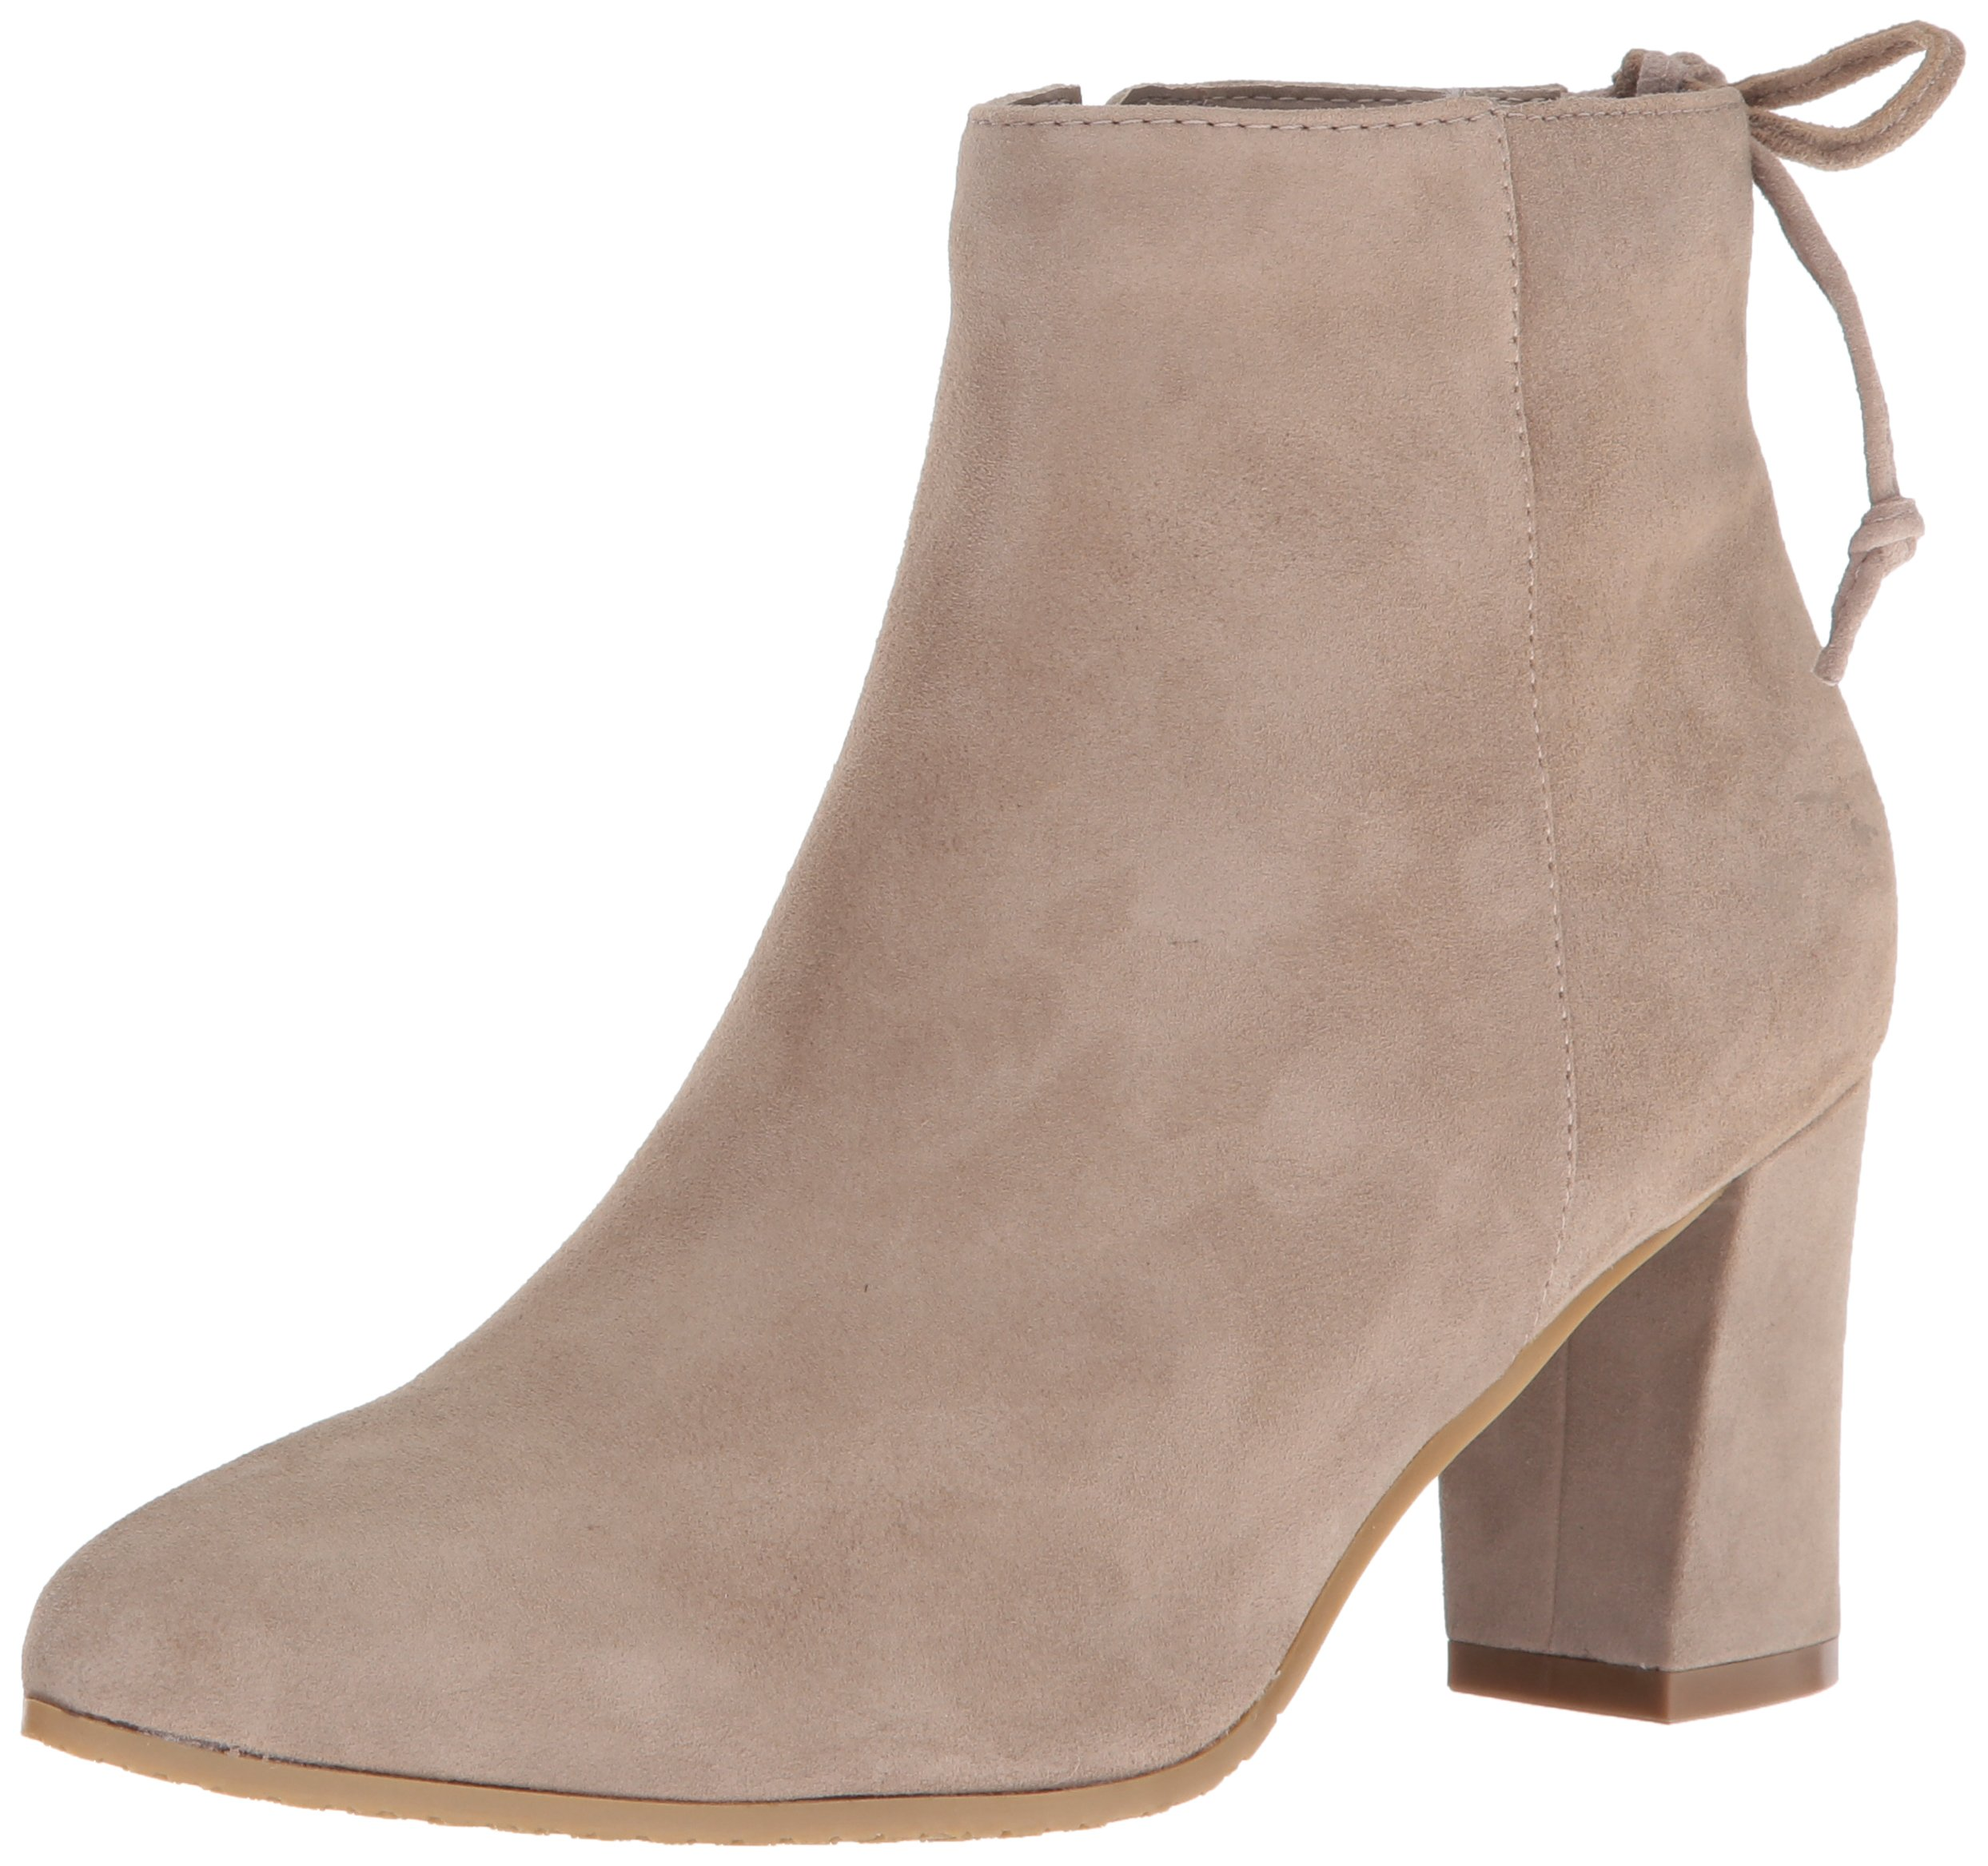 Blondo Women's Tiana Waterproof Ankle Bootie, Taupe Suede, 7.5 M US by Blondo